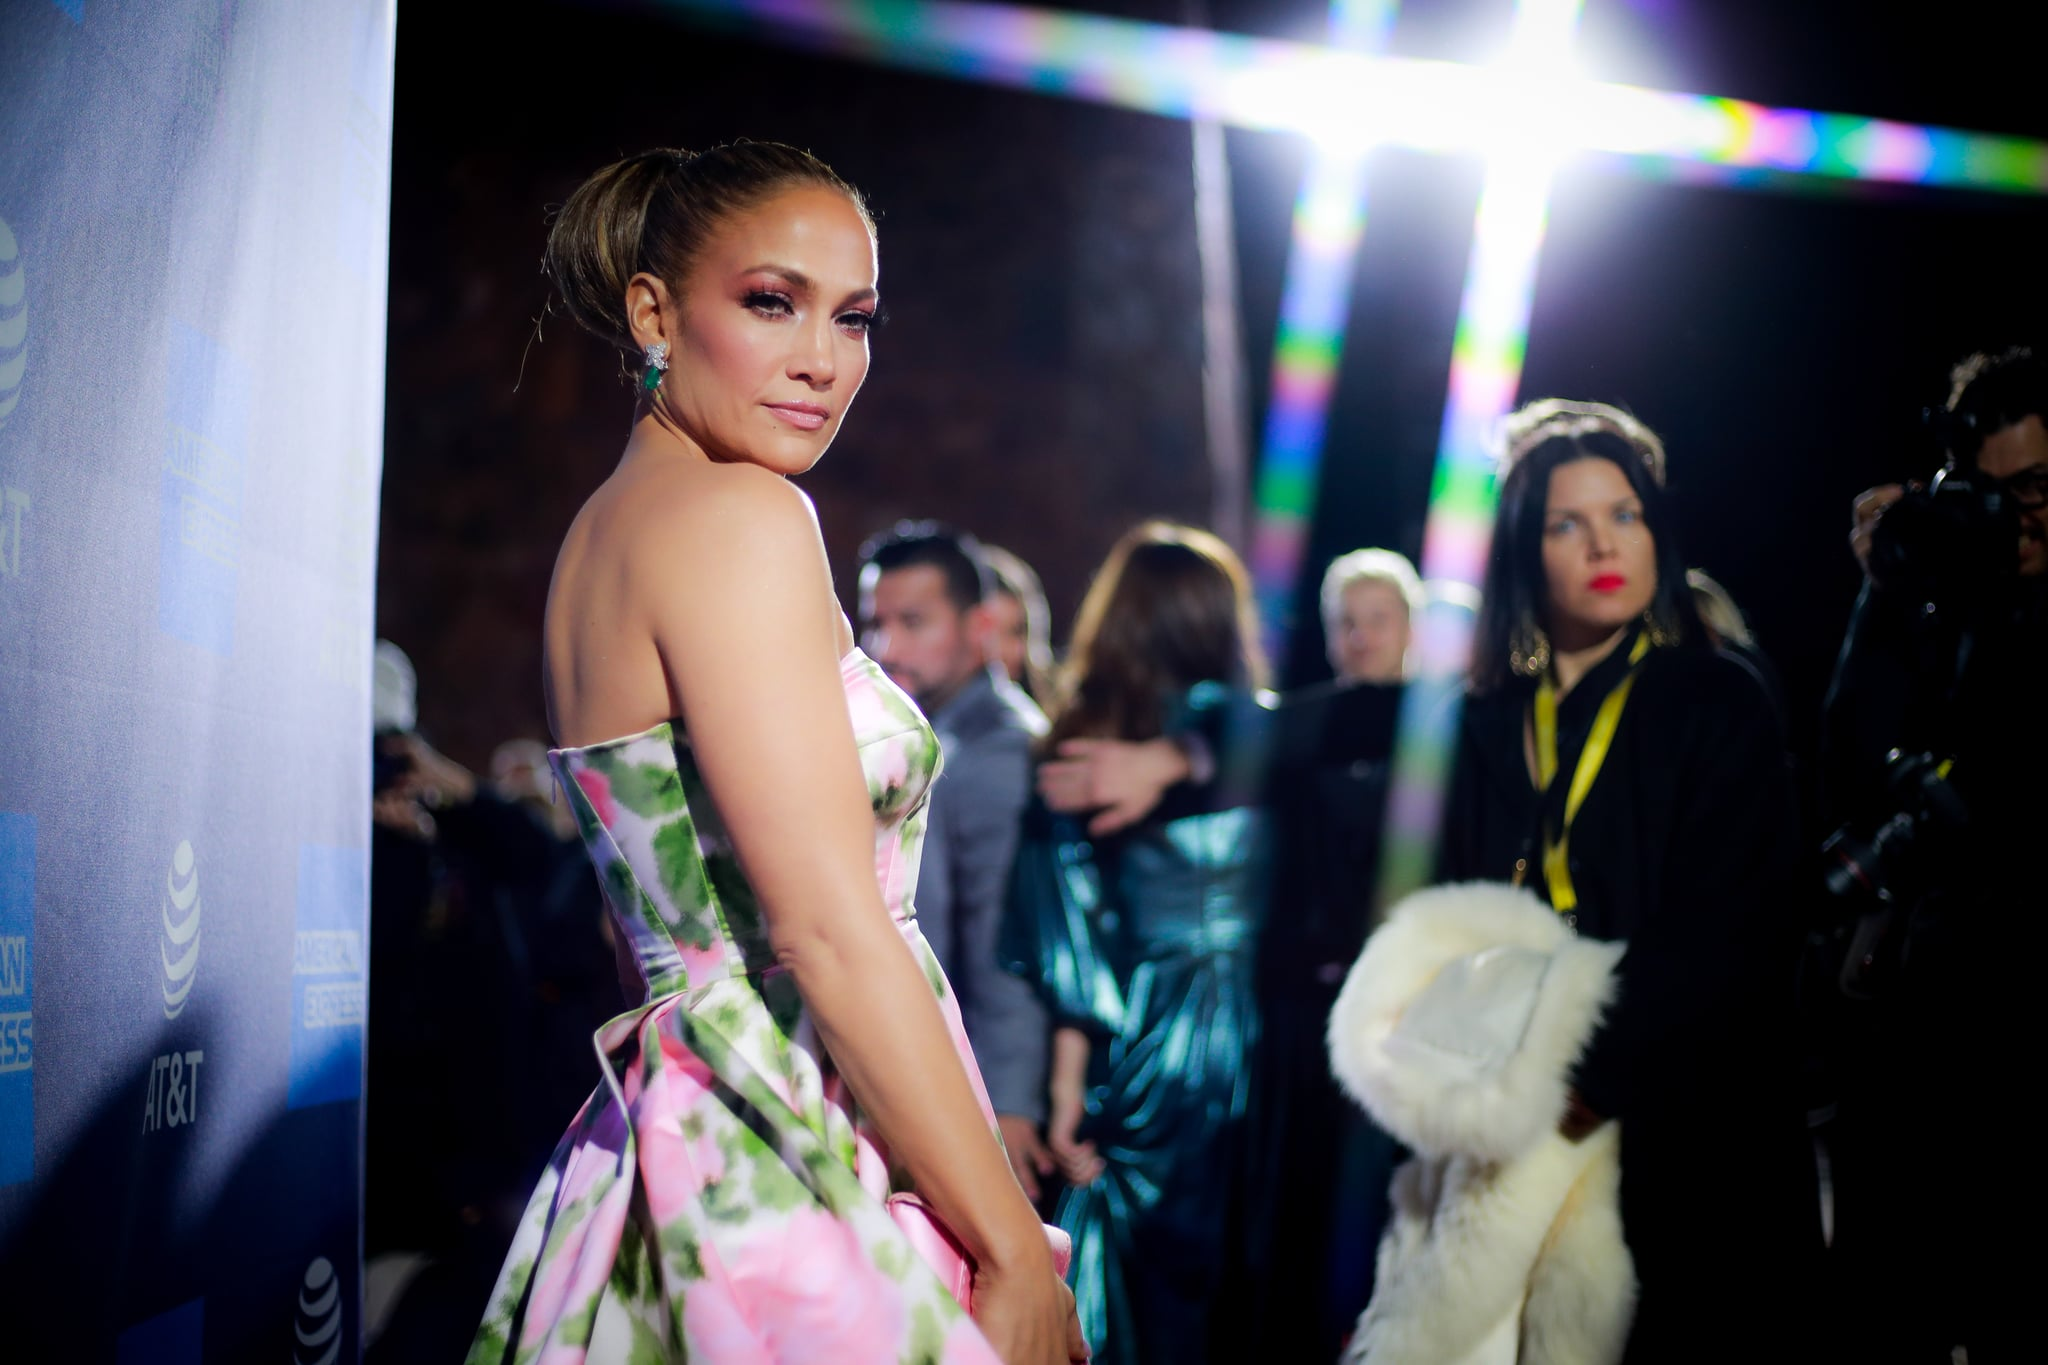 PALM SPRINGS, CALIFORNIA - JANUARY 02: Jennifer Lopez attends the 31st Annual Palm Springs International Film Festival Film Awards Gala at Palm Springs Convention Center on January 02, 2020 in Palm Springs, California. (Photo by Rich Fury/Getty Images for Palm Springs International Film Festival)